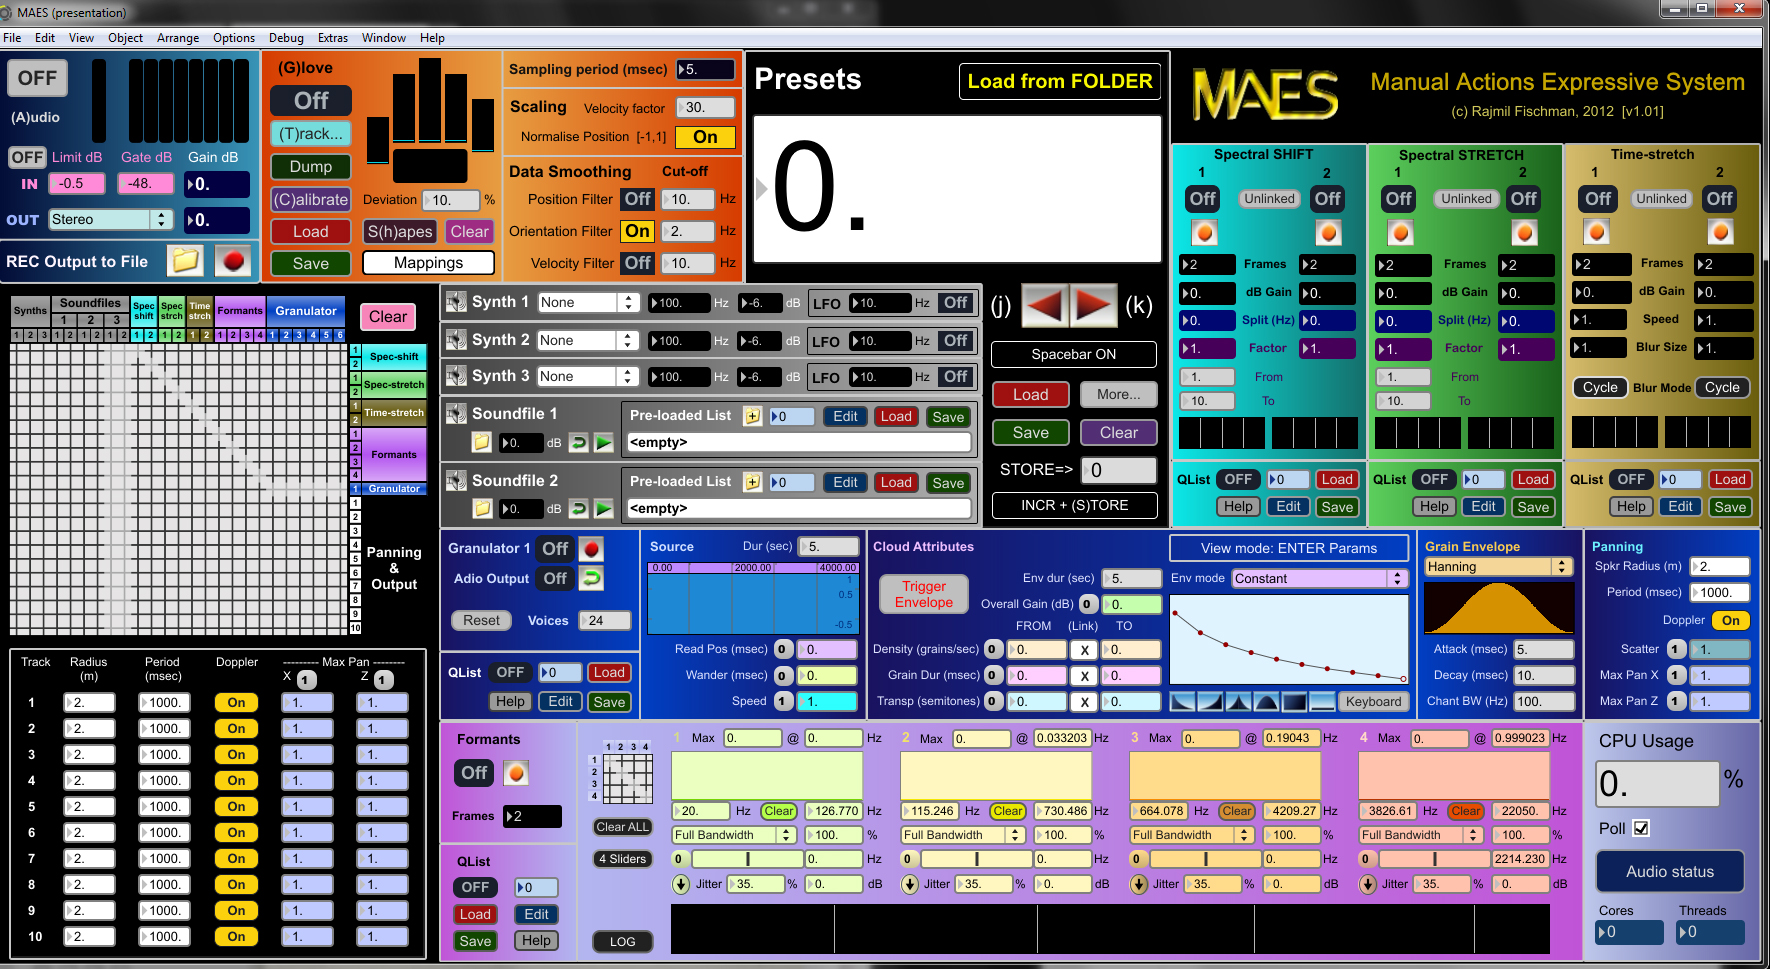 MAES - Main screen